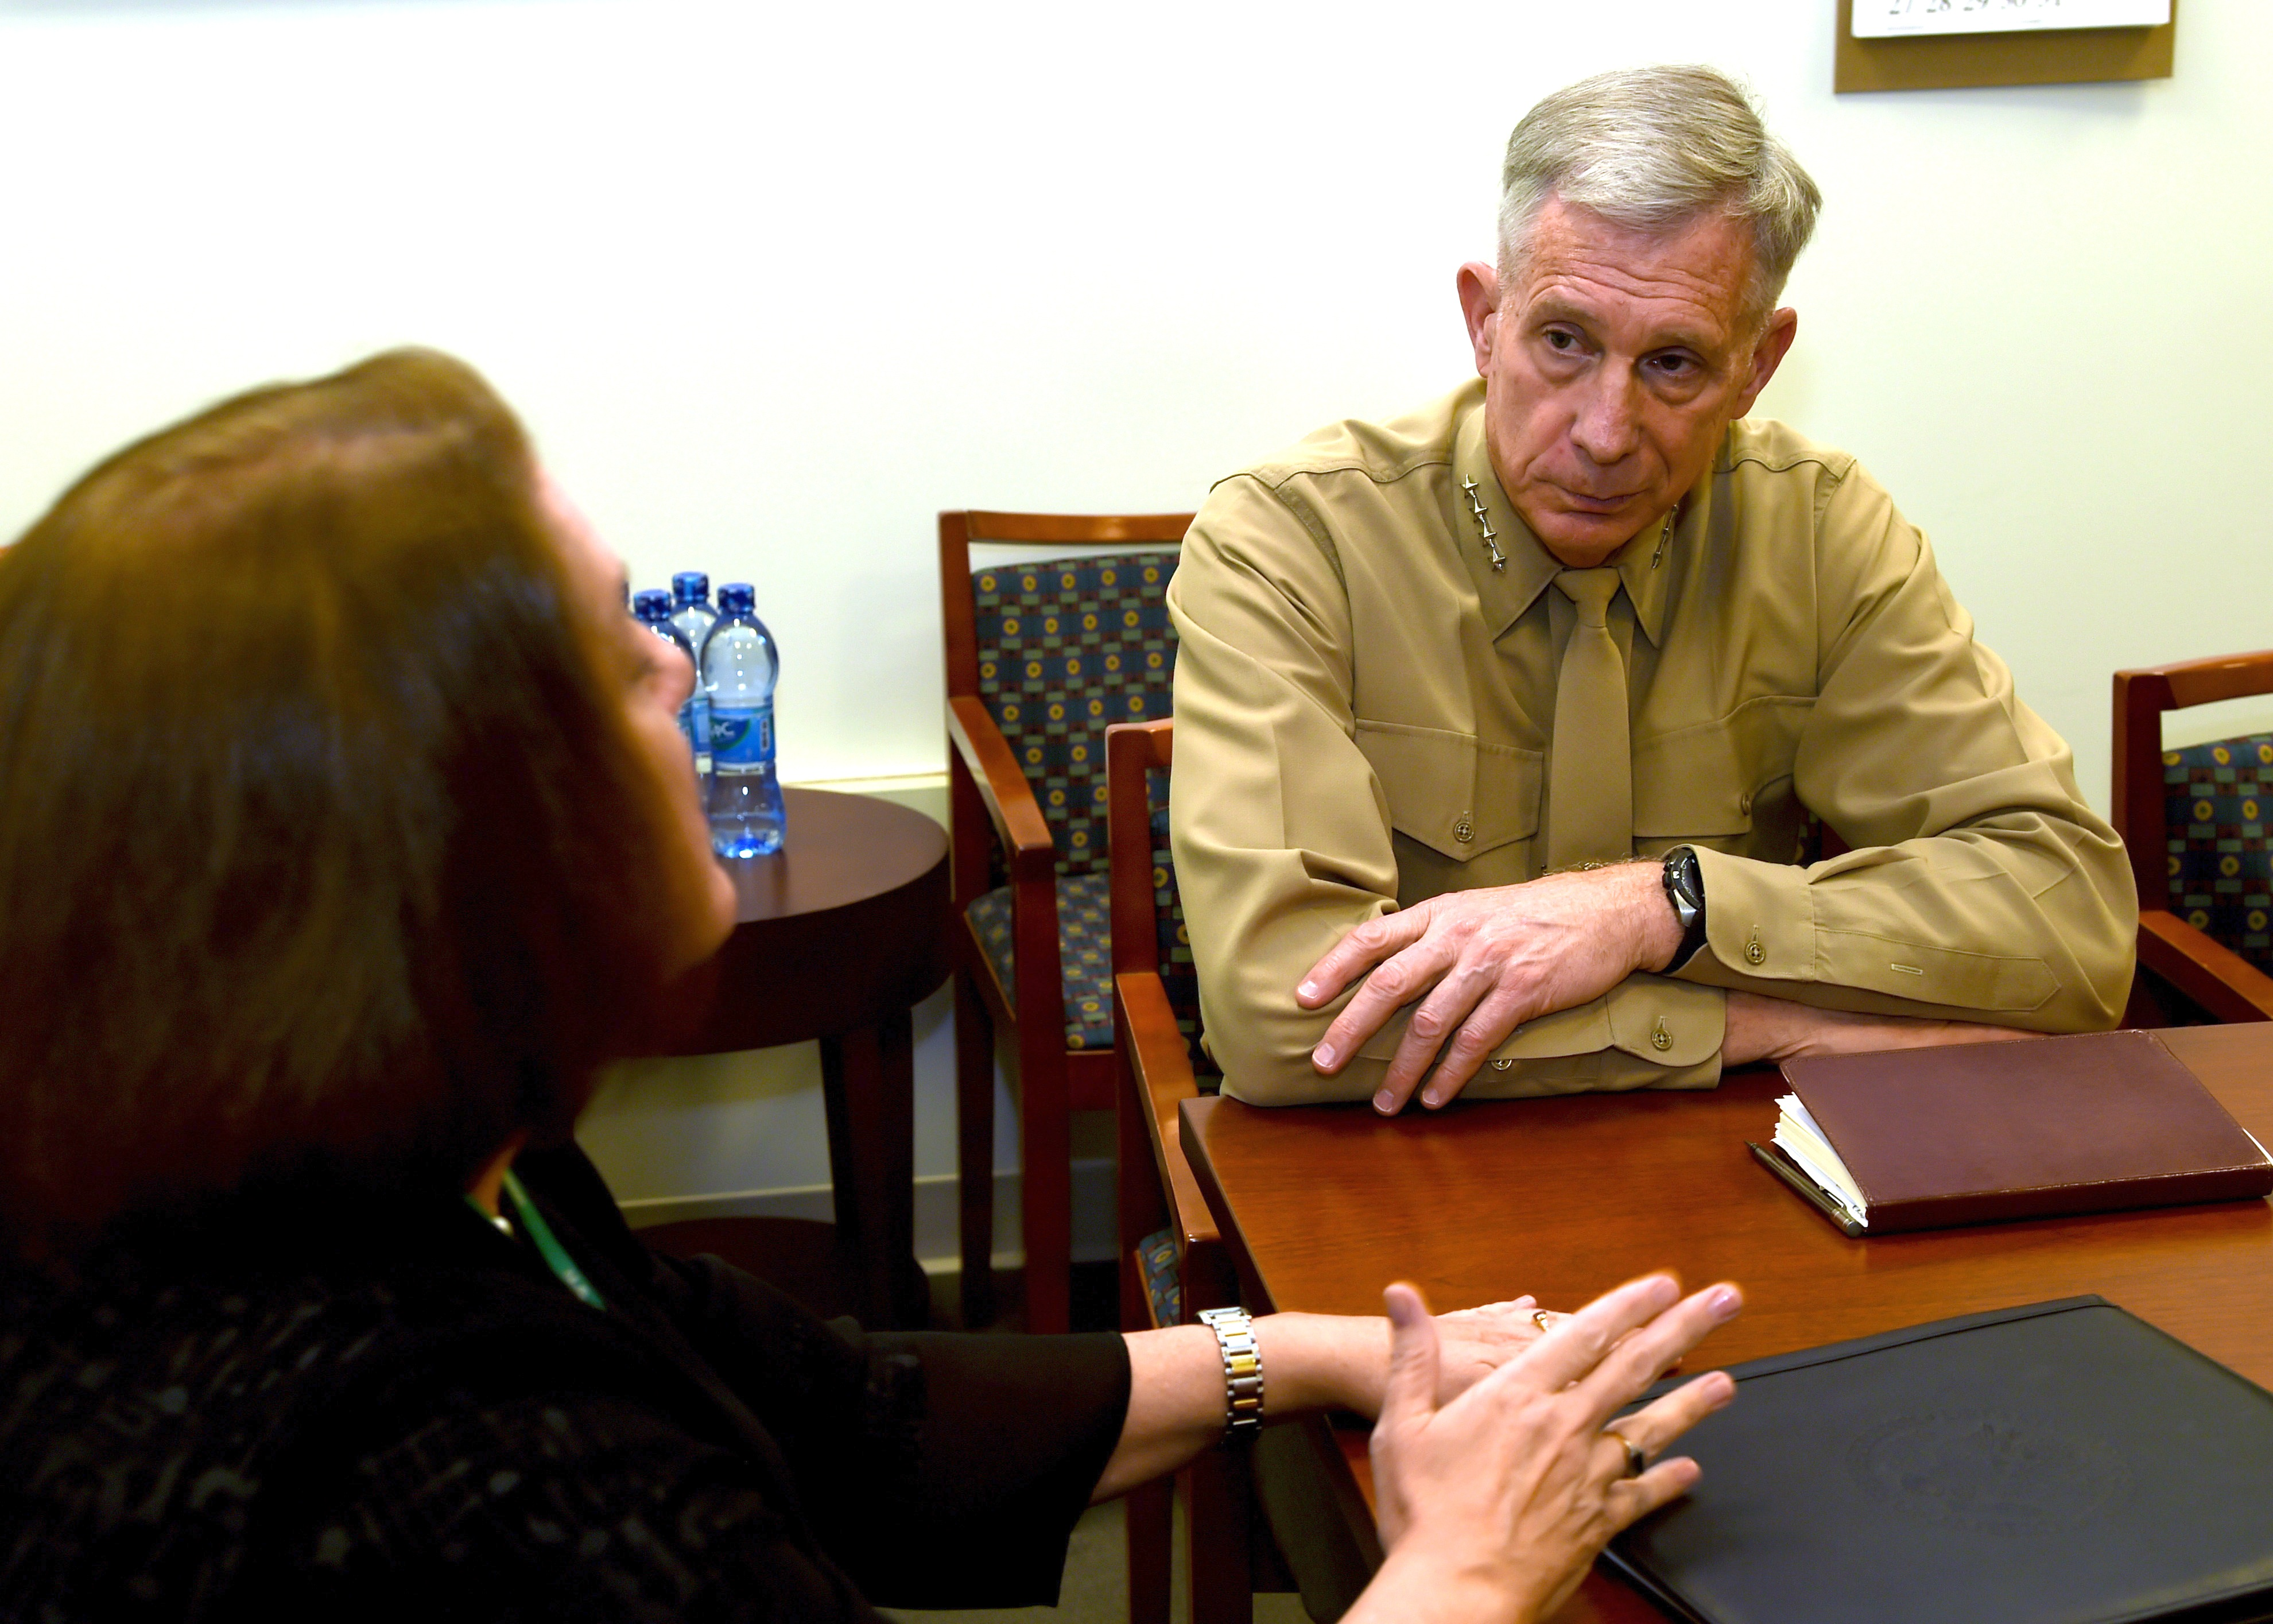 ADDIS ABABA, Ethiopia – U.S. Marine Gen. Thomas D. Waldhauser, Commander, U.S. Africa Command speaks with Ambassador Mary Beth Leonard, U.S. Ambassador to the African Union at a meeting in Addis Ababa, Ethiopia, Nov. 28, 2018. During his visit to Addis Ababa, Waldhauser also met with Ethiopian Minister of Defense Aisha Mohammed, U.S. Ambassador to Ethiopia Michael Raynor, and Assistant Secretary of State for the Bureau of African Affairs, Tibor P. Nagy. 